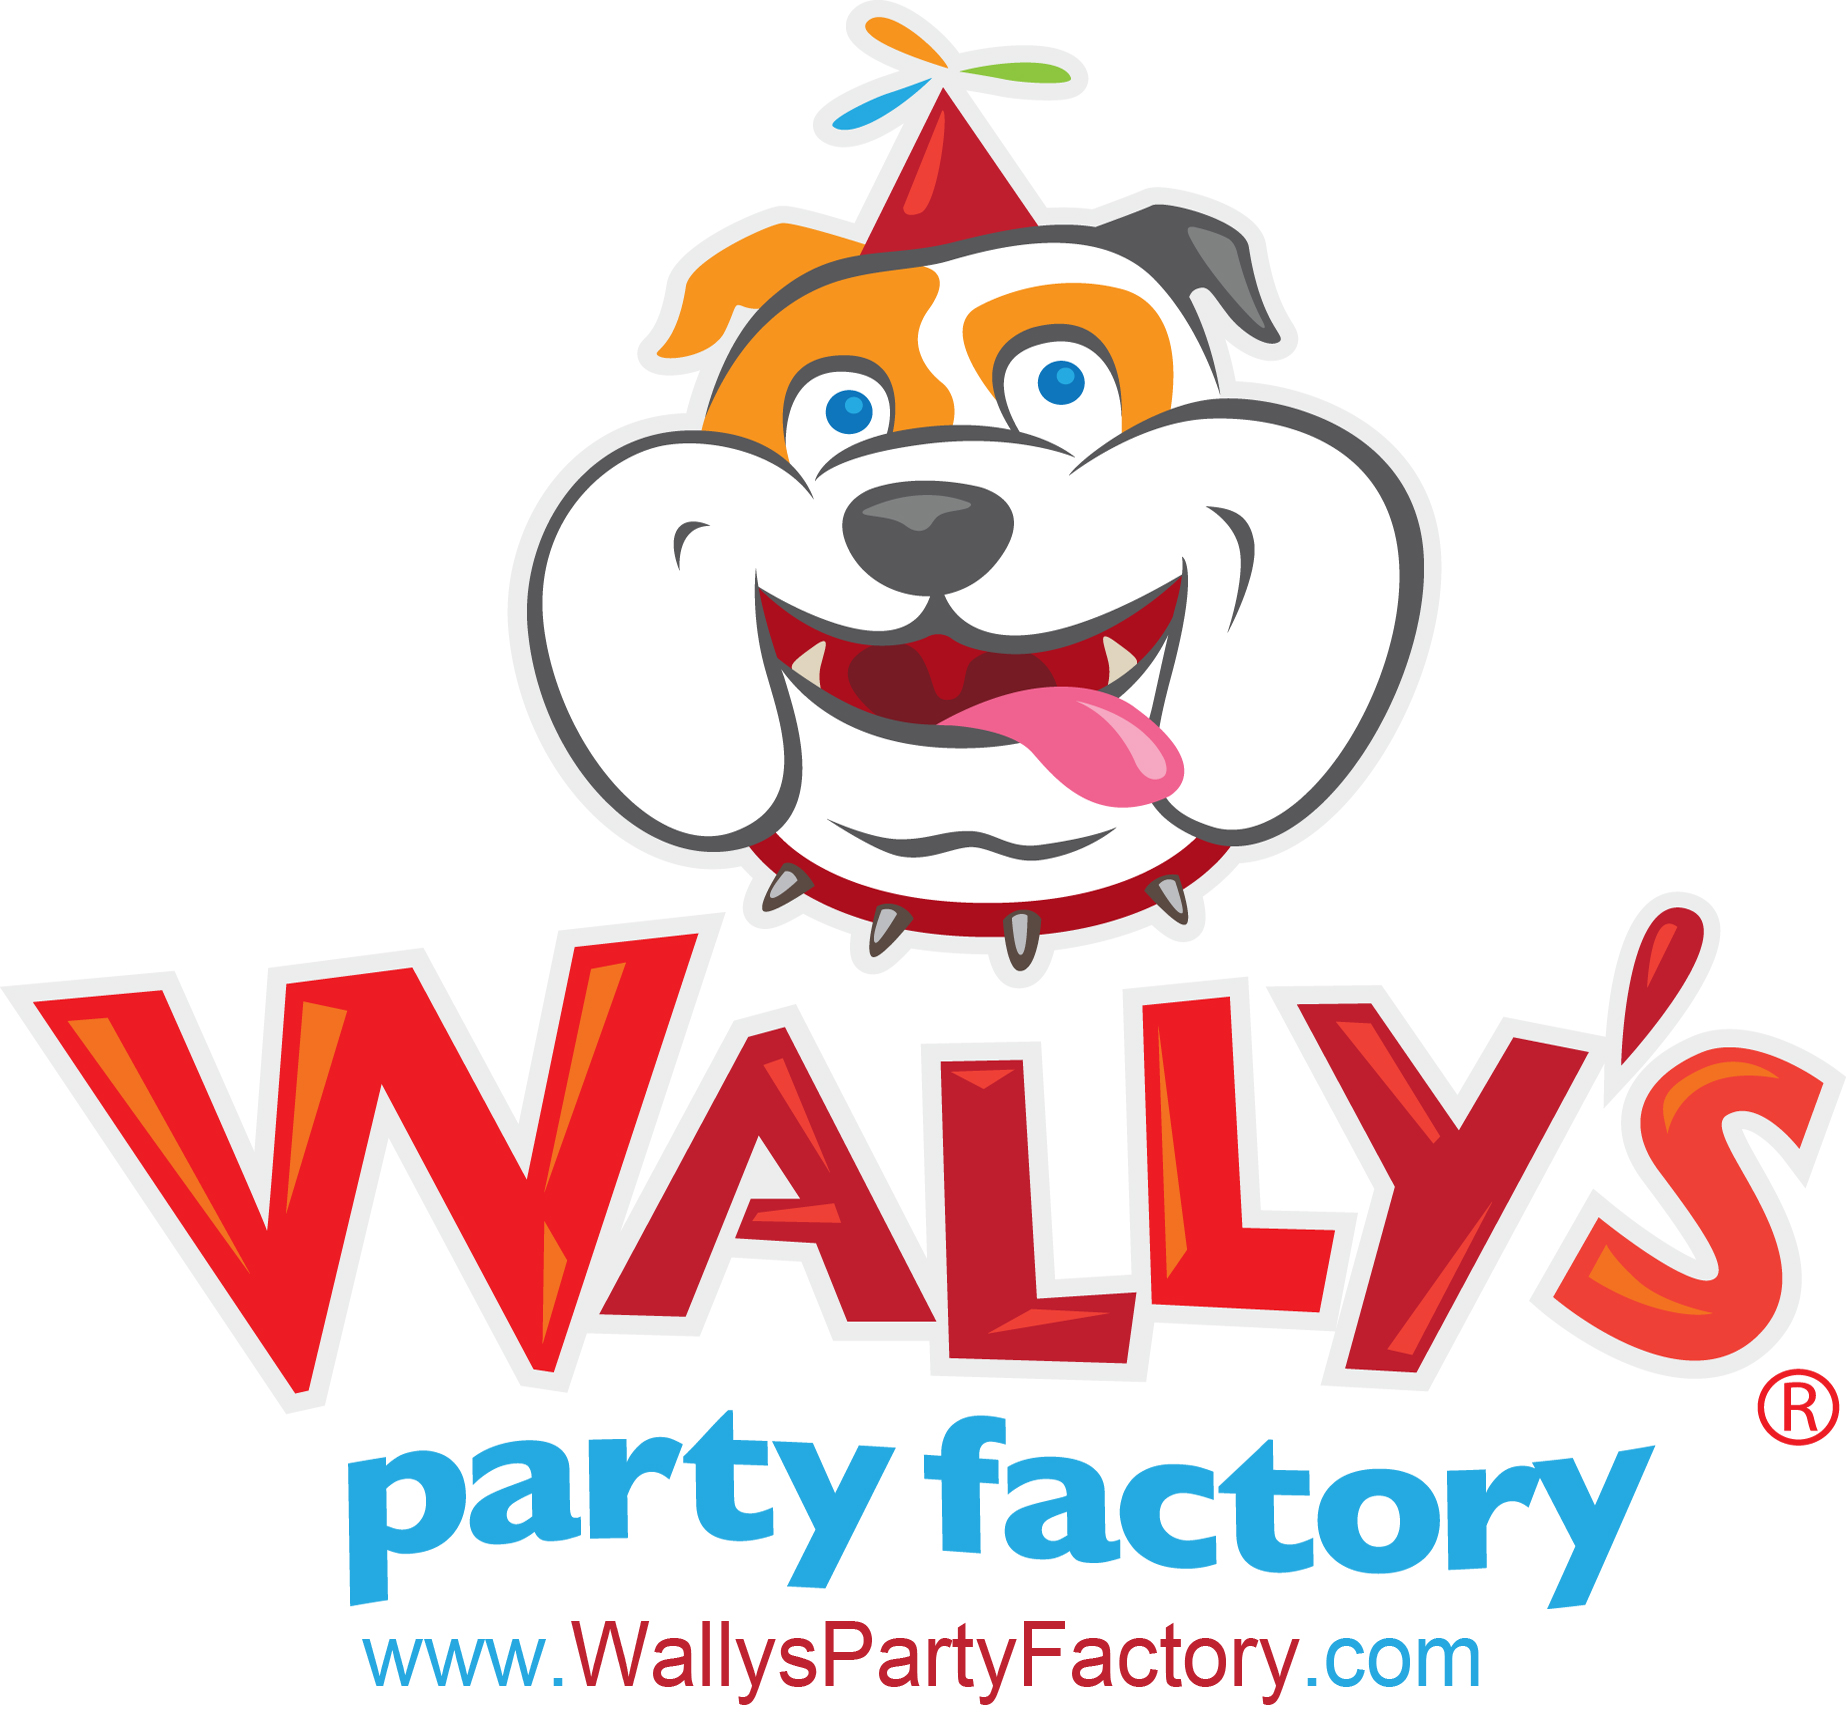 Card & Party Factory in Brownwood, TX Announces Store Name Change ...